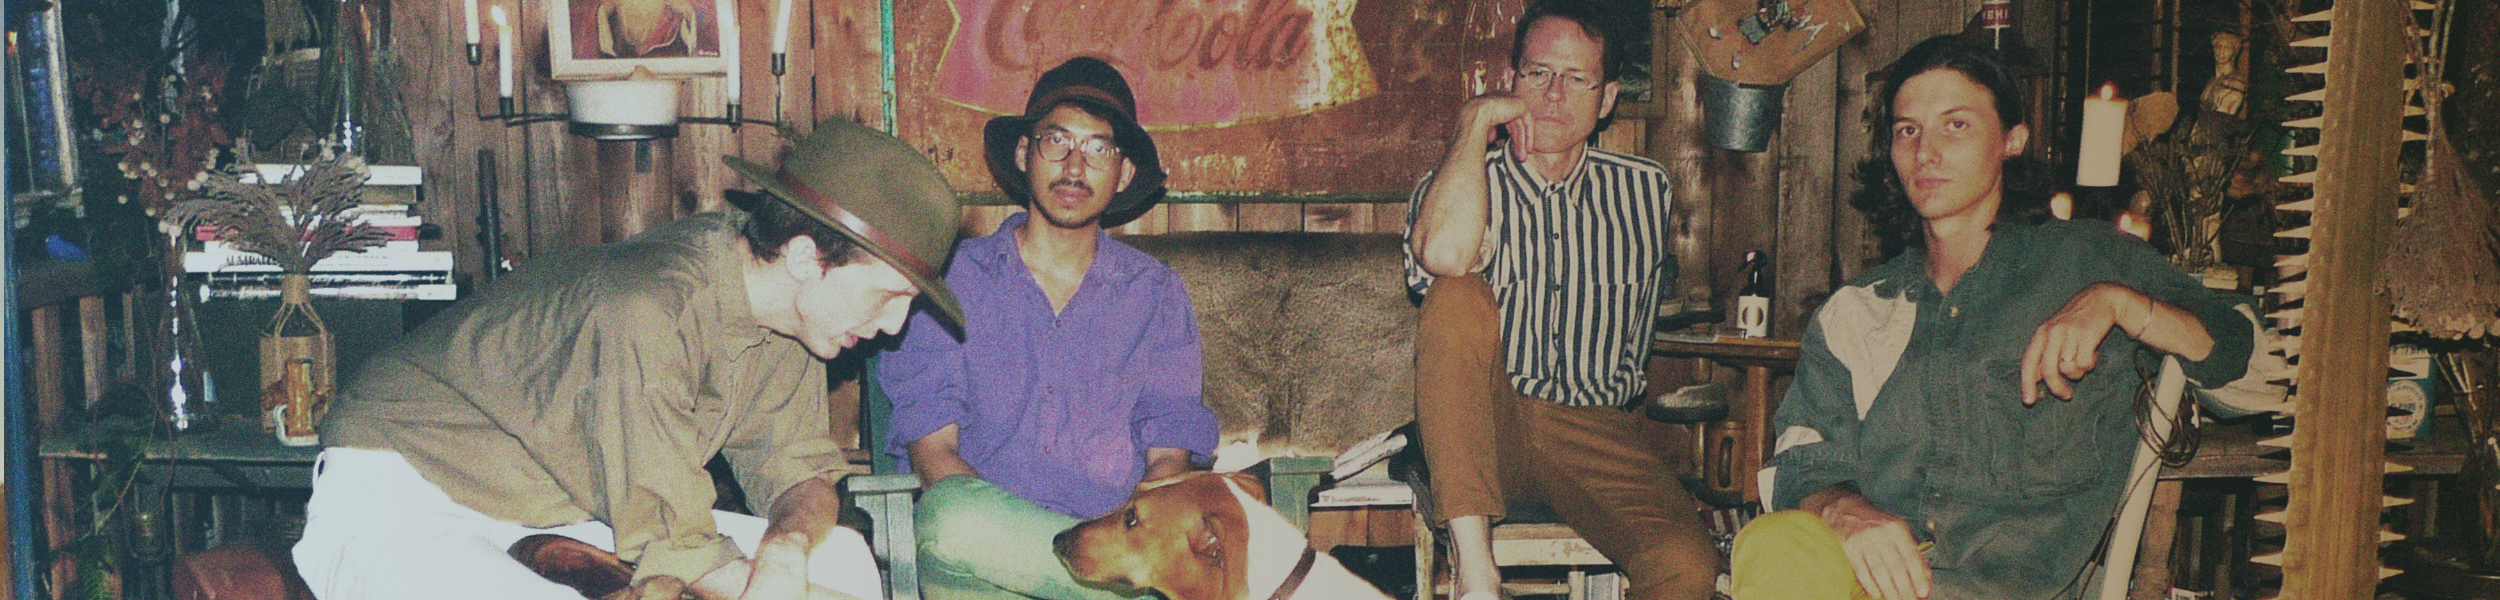 Deerhunter - Deerhunter 'Halcyon Digest' out now; Helicopter Diplo and Lunice mix; US tour starts today